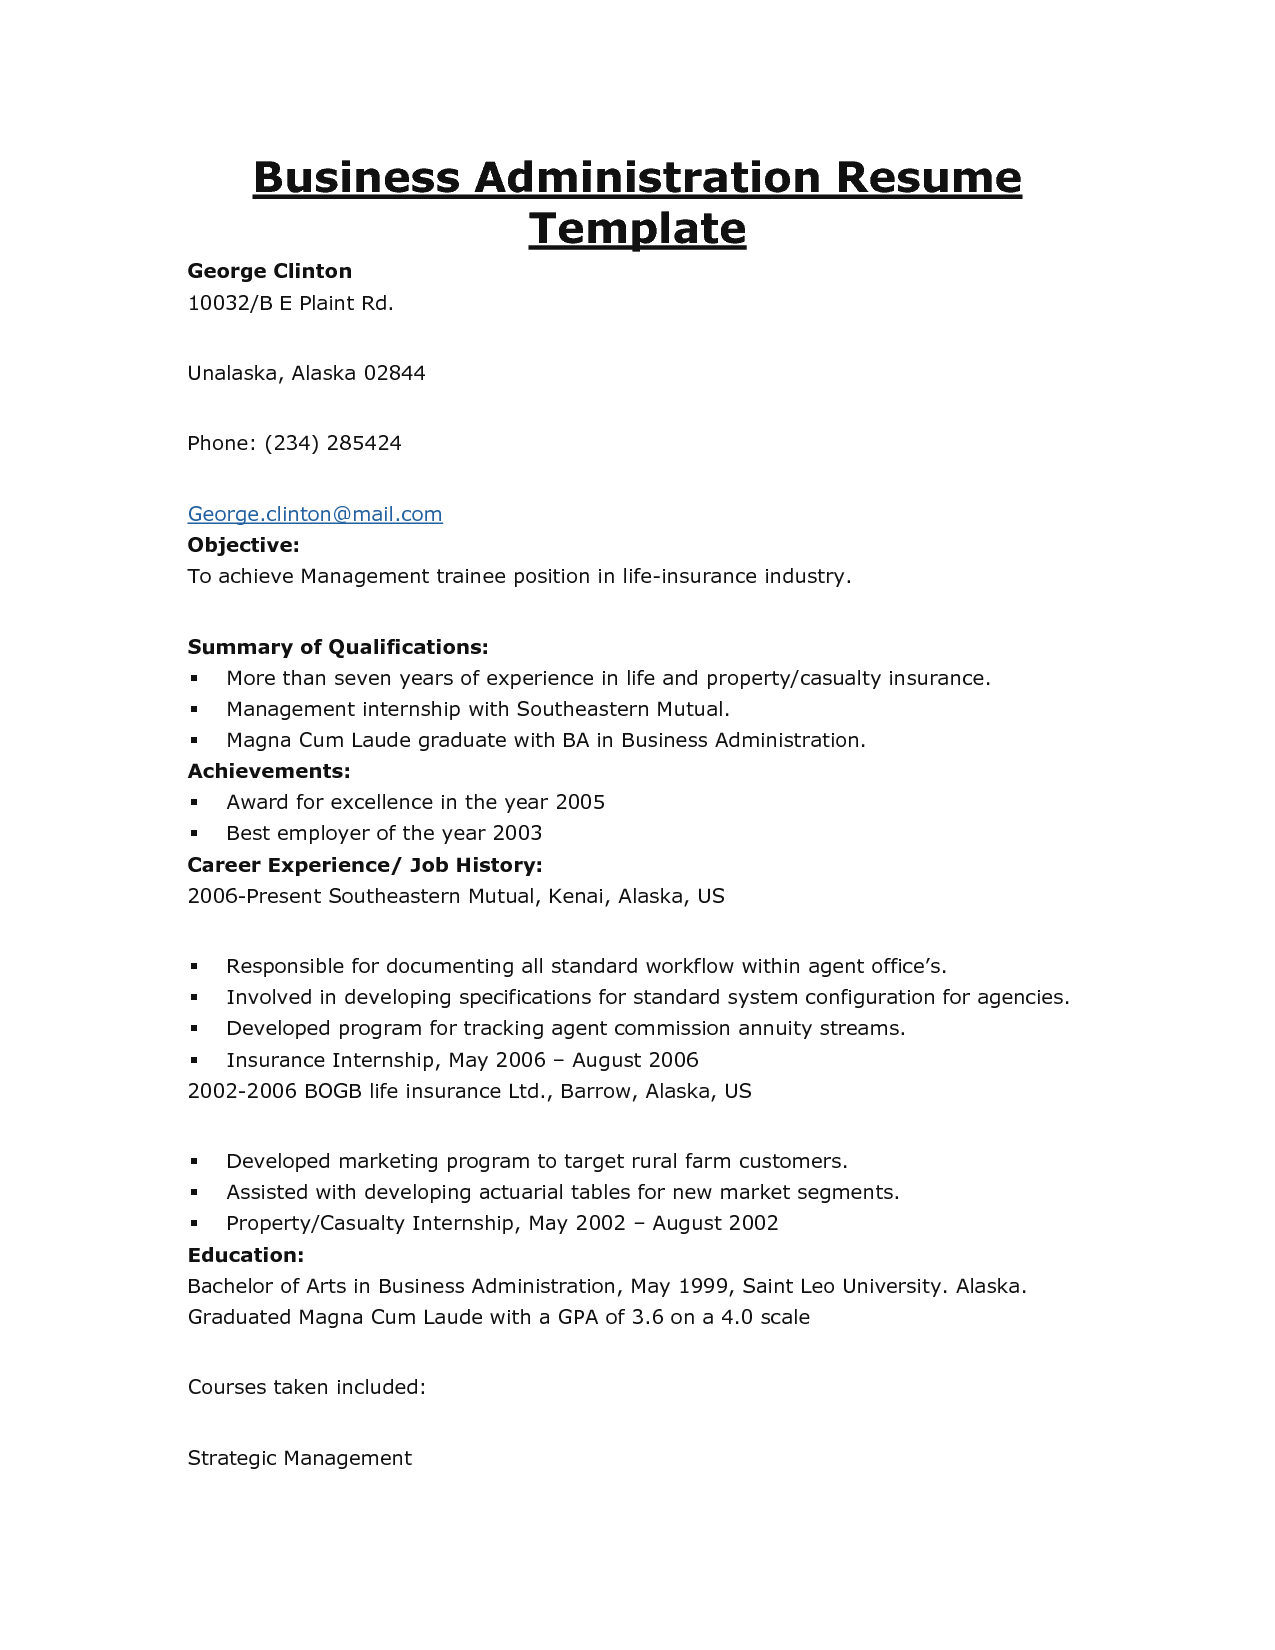 Business Management Resume Samples Amazing Resume Examples Business Management #business #examples #management .